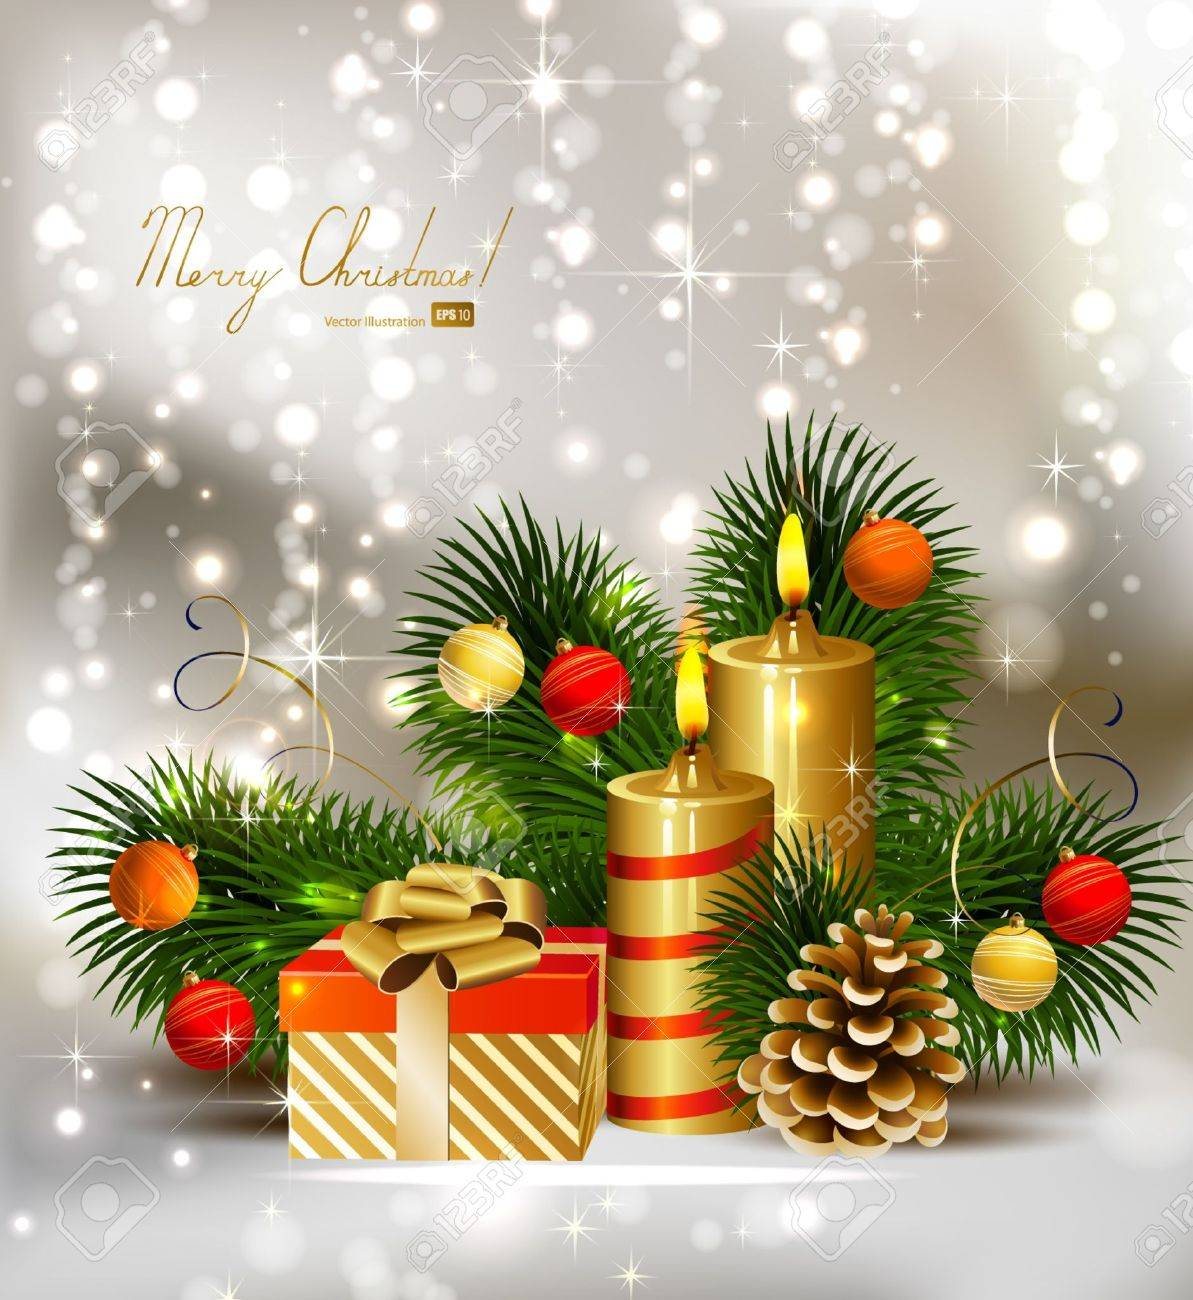 Christmas background with burning candles and Christmas bauble Stock Vector - 14580208